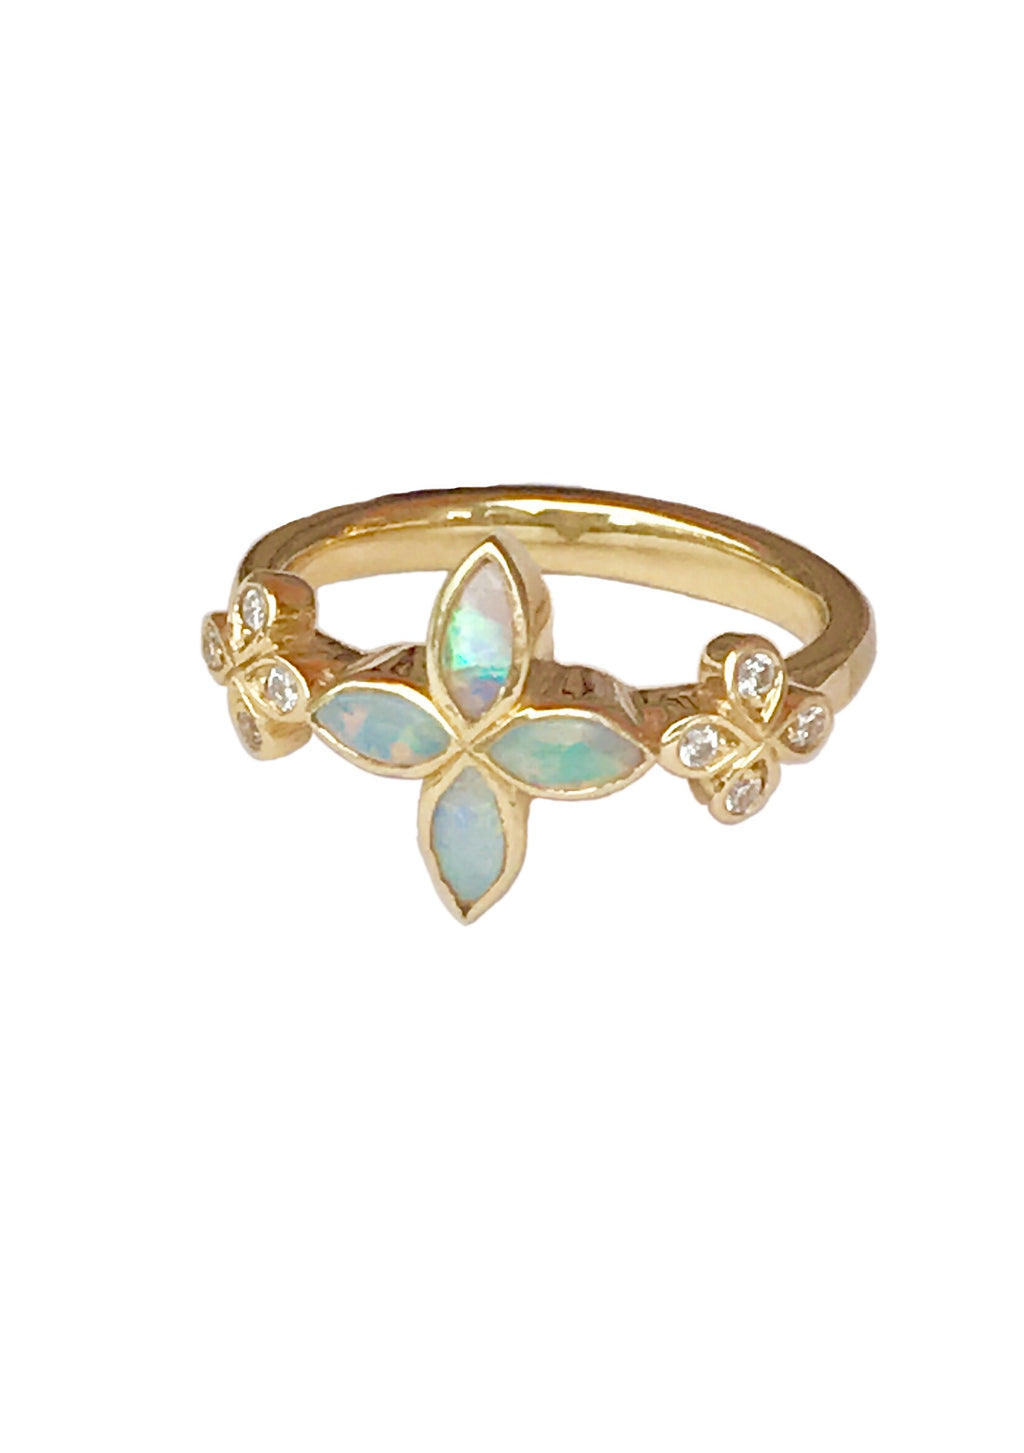 Australian Opal and Diamond Flower Ring